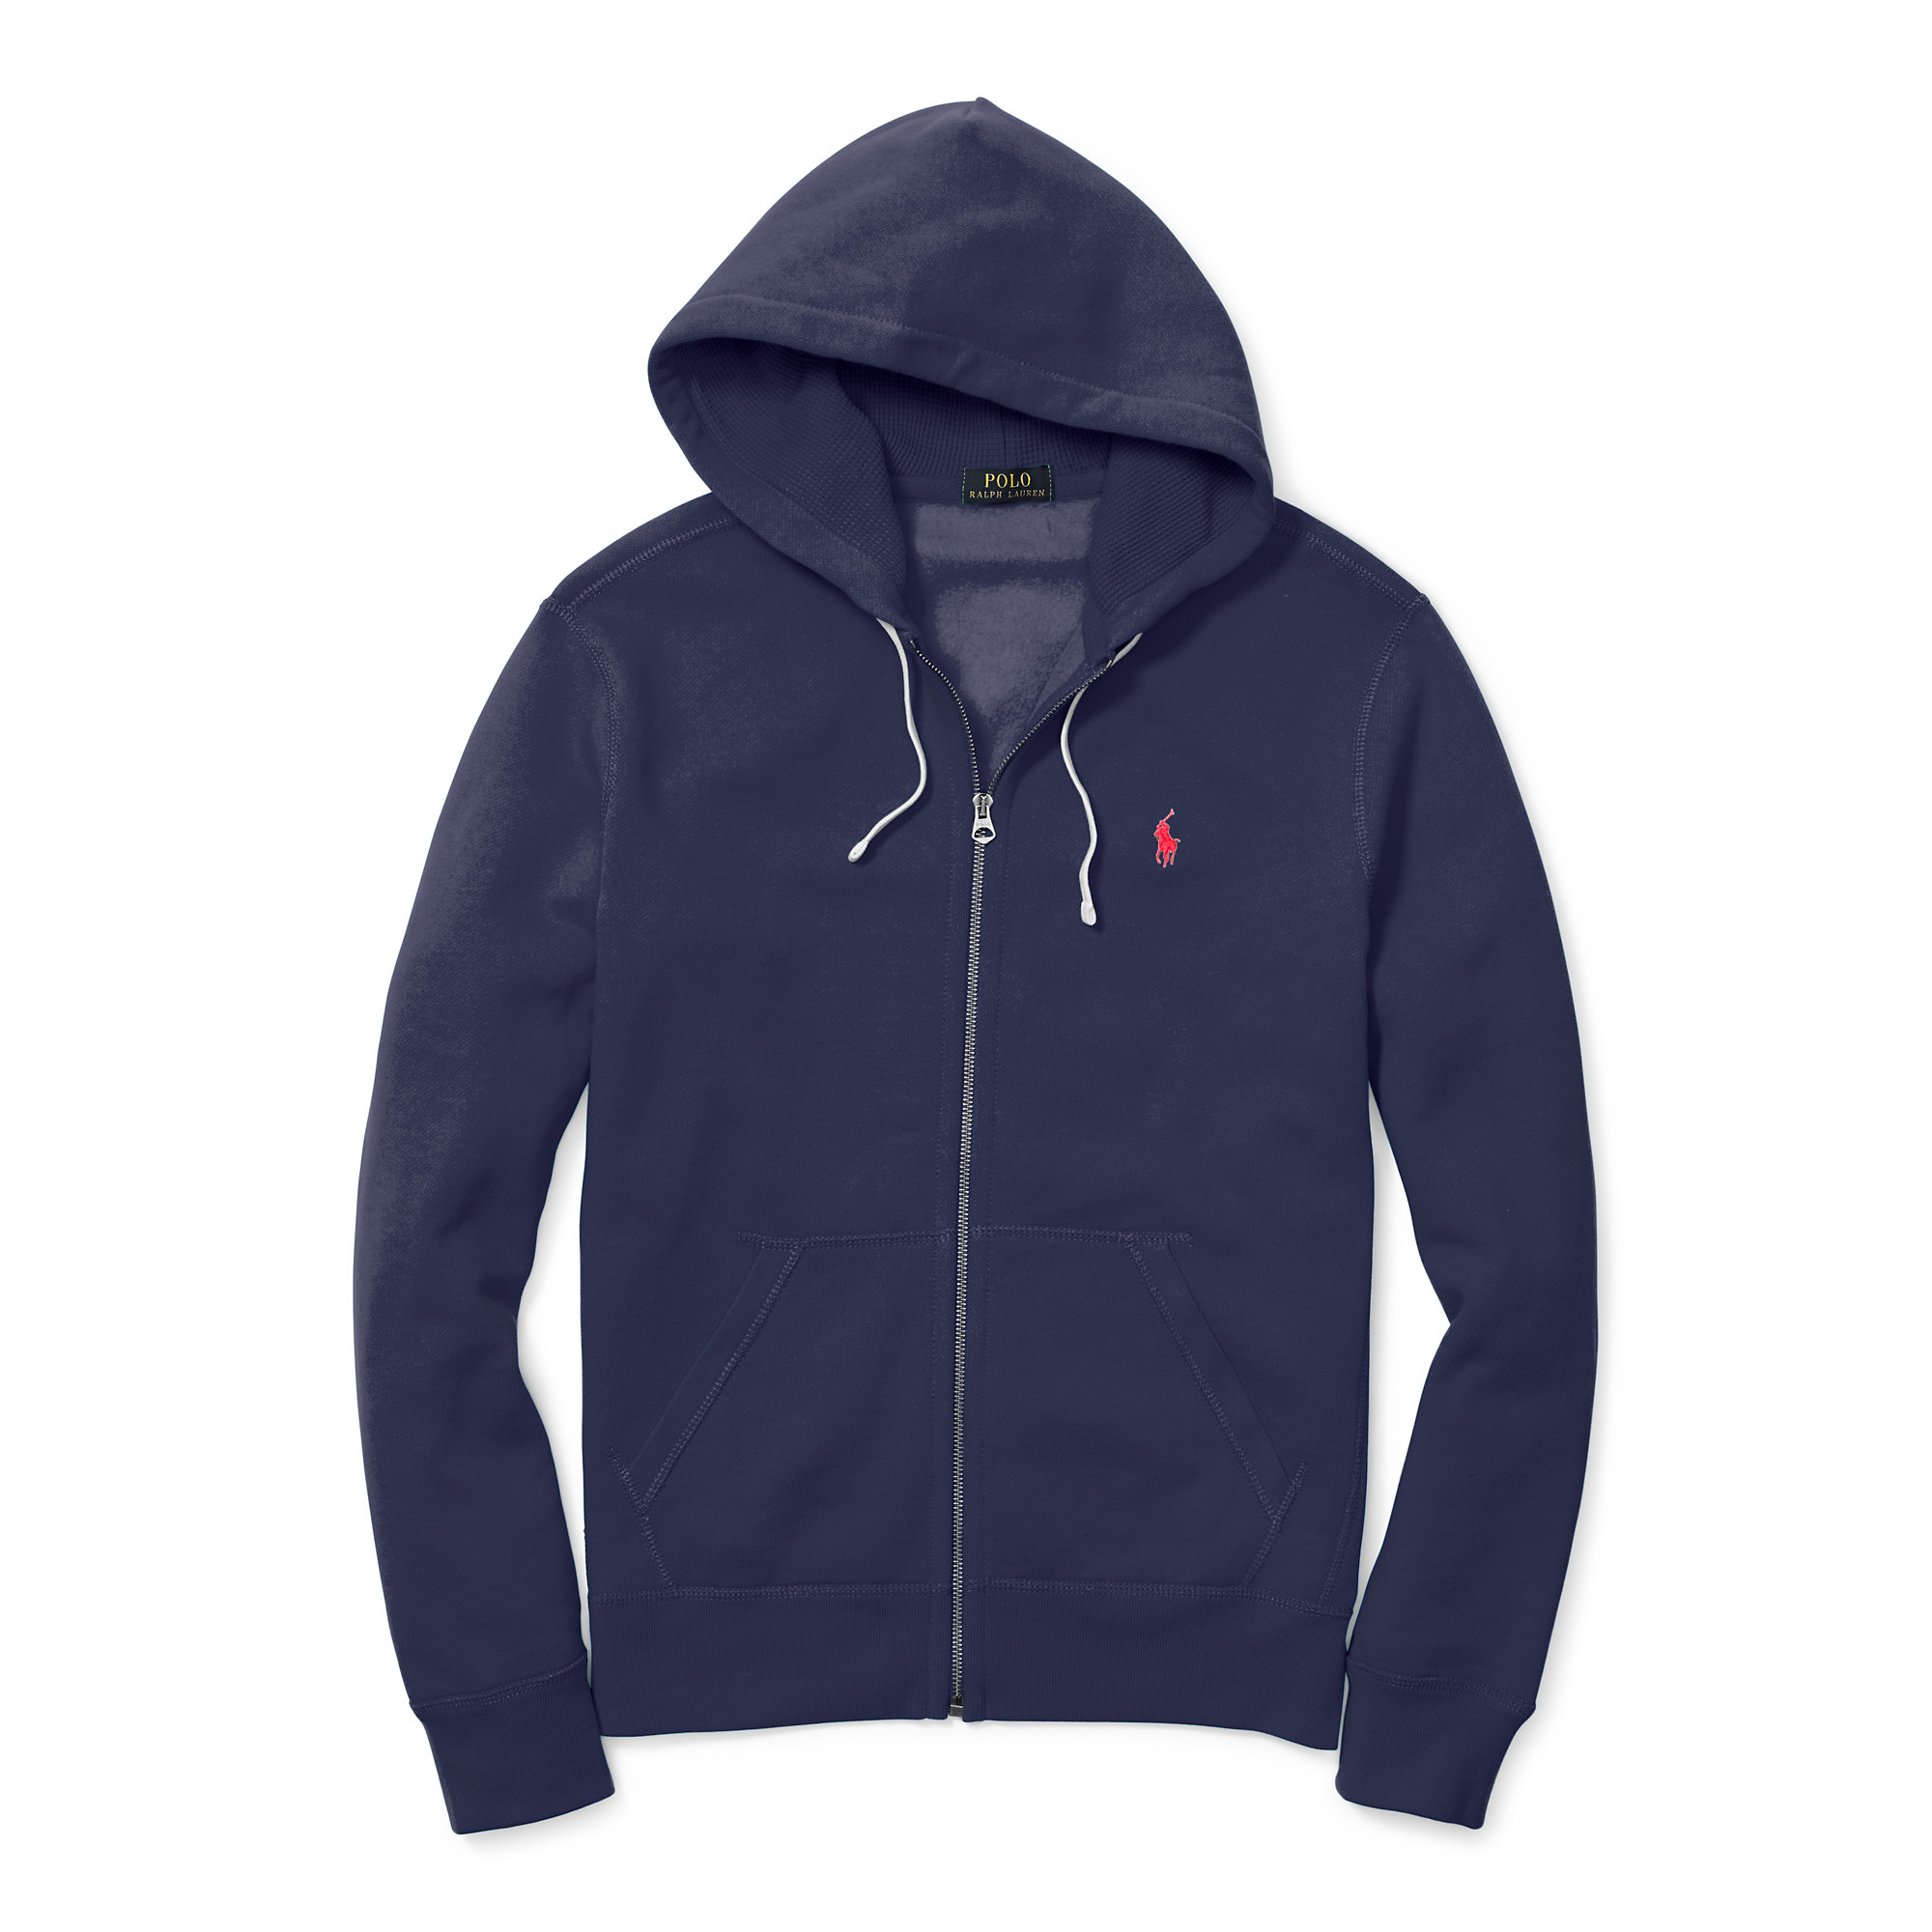 polo ralph lauren cotton blend fleece hoodie in blue for men lyst. Black Bedroom Furniture Sets. Home Design Ideas